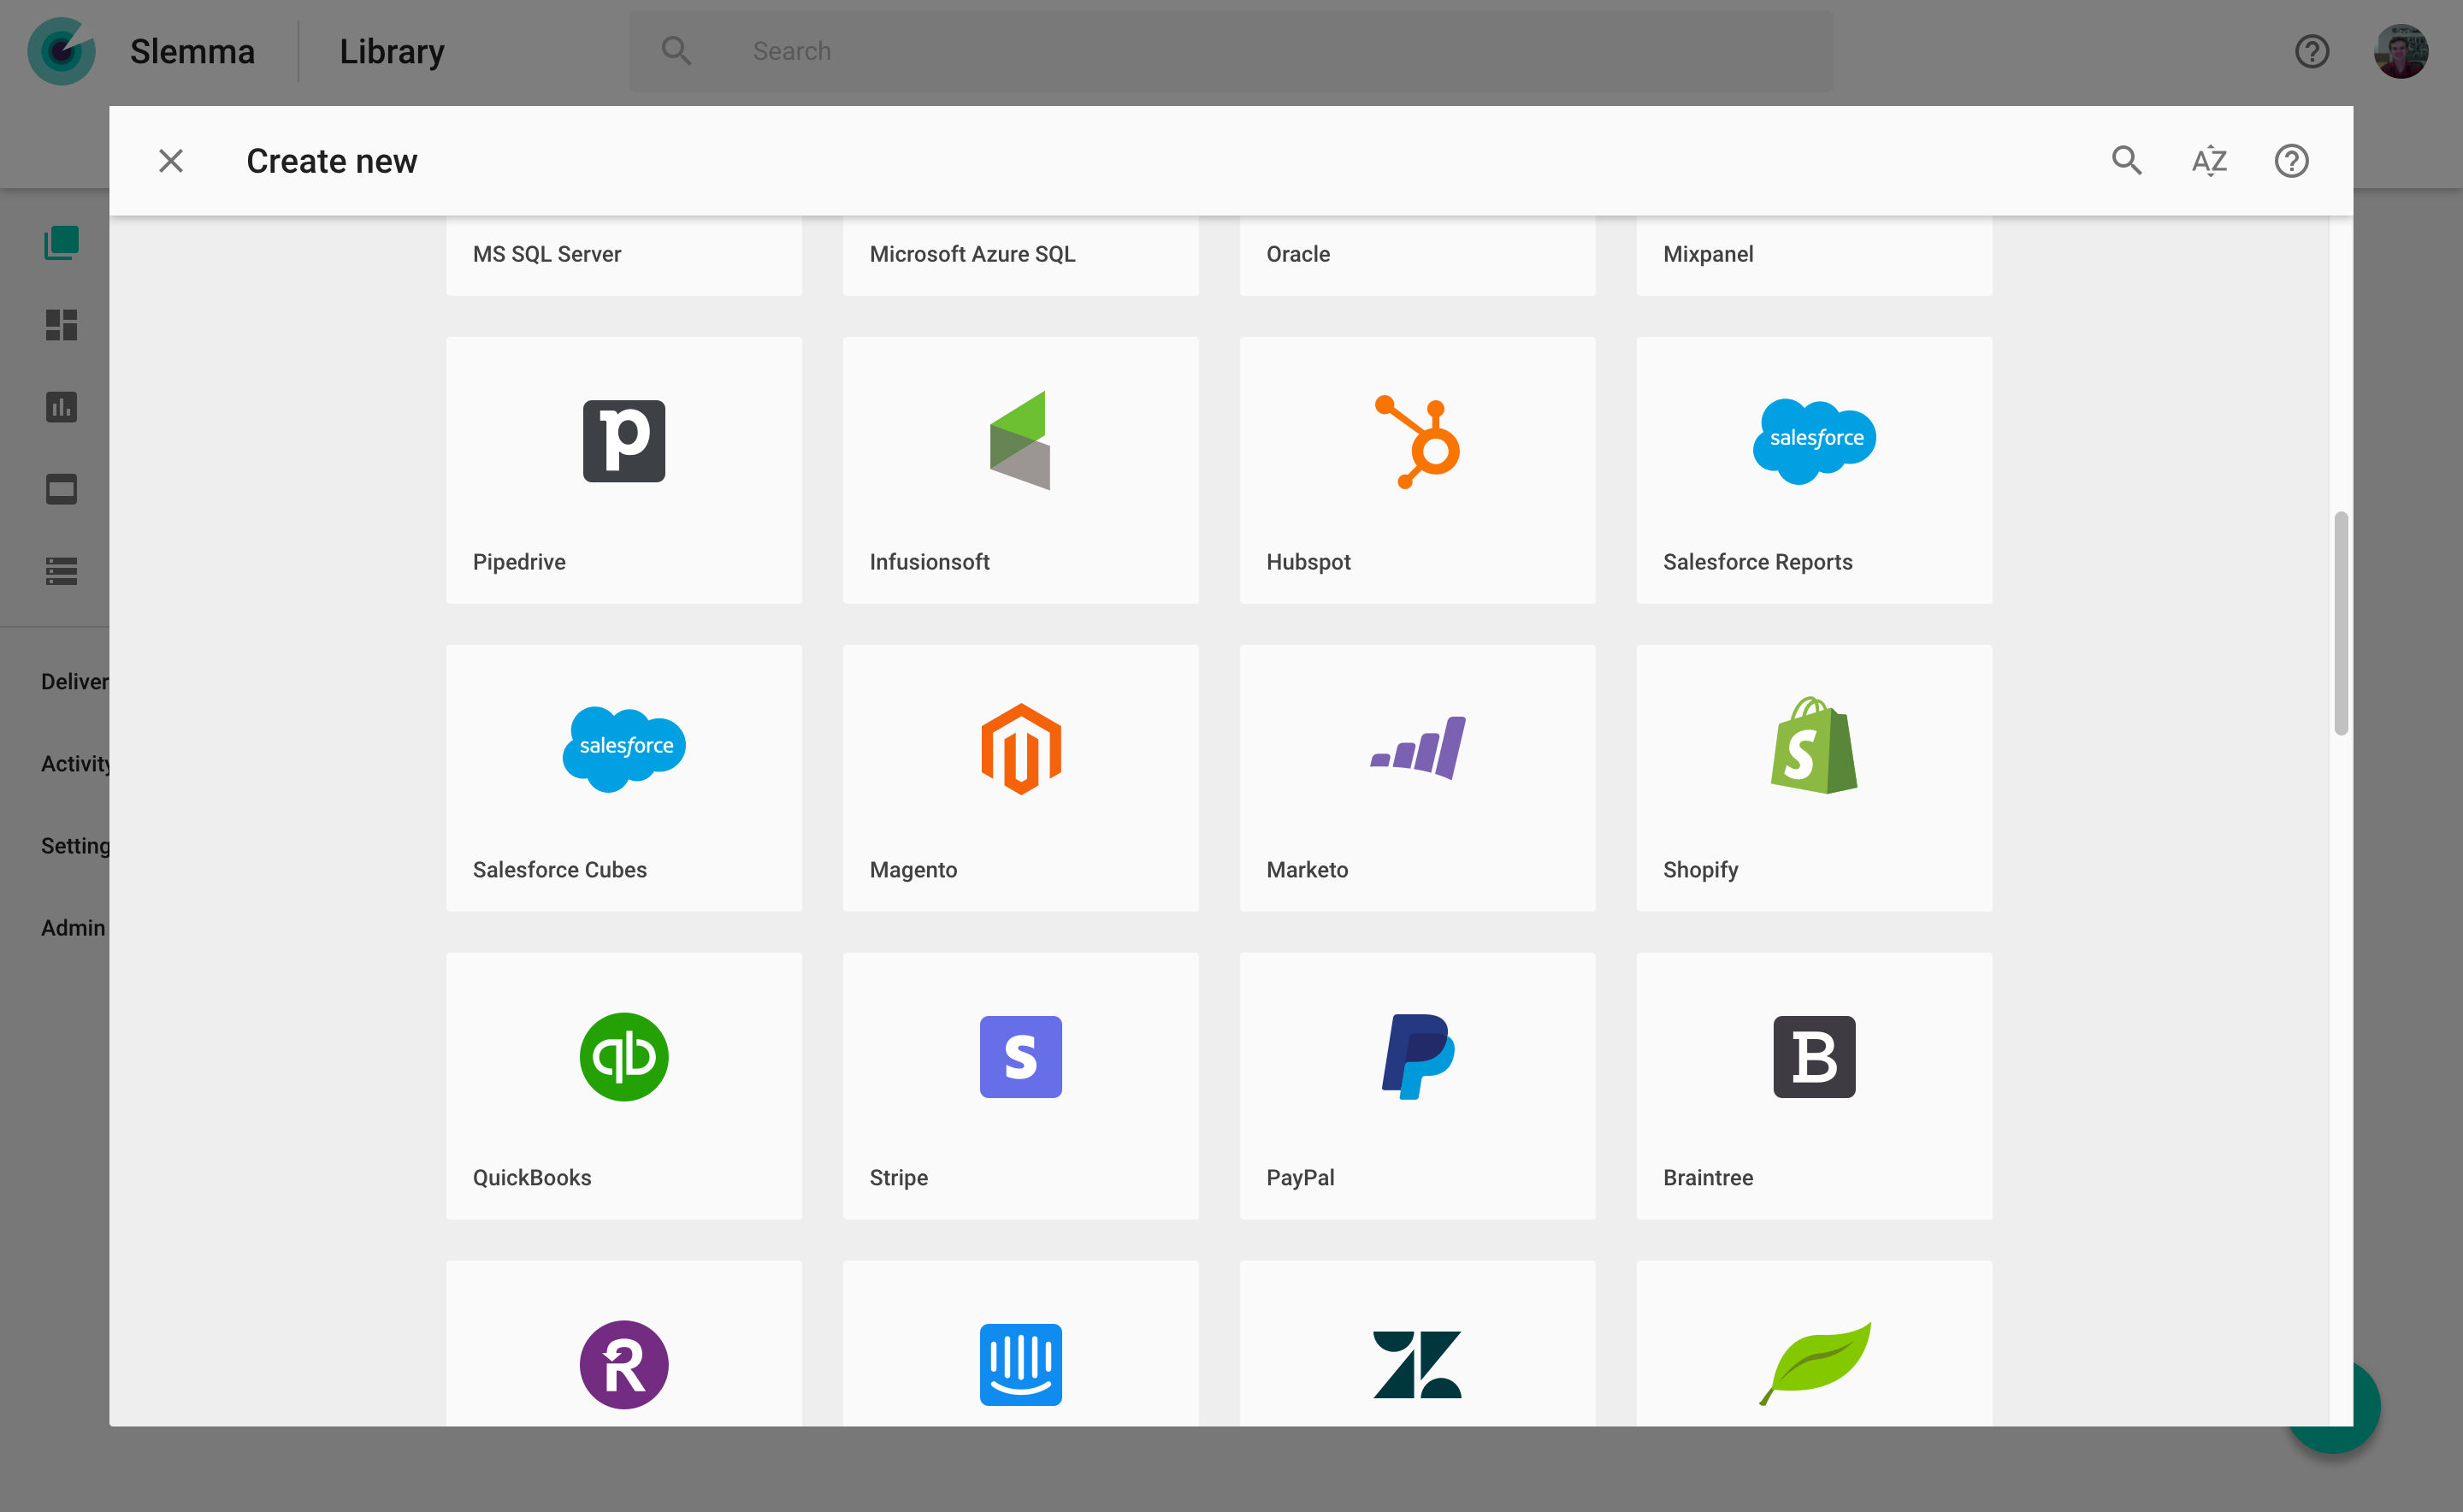 Slemma screenshot: Integrate with the cloud storage, data warehouse and cloud service solutions you already use.